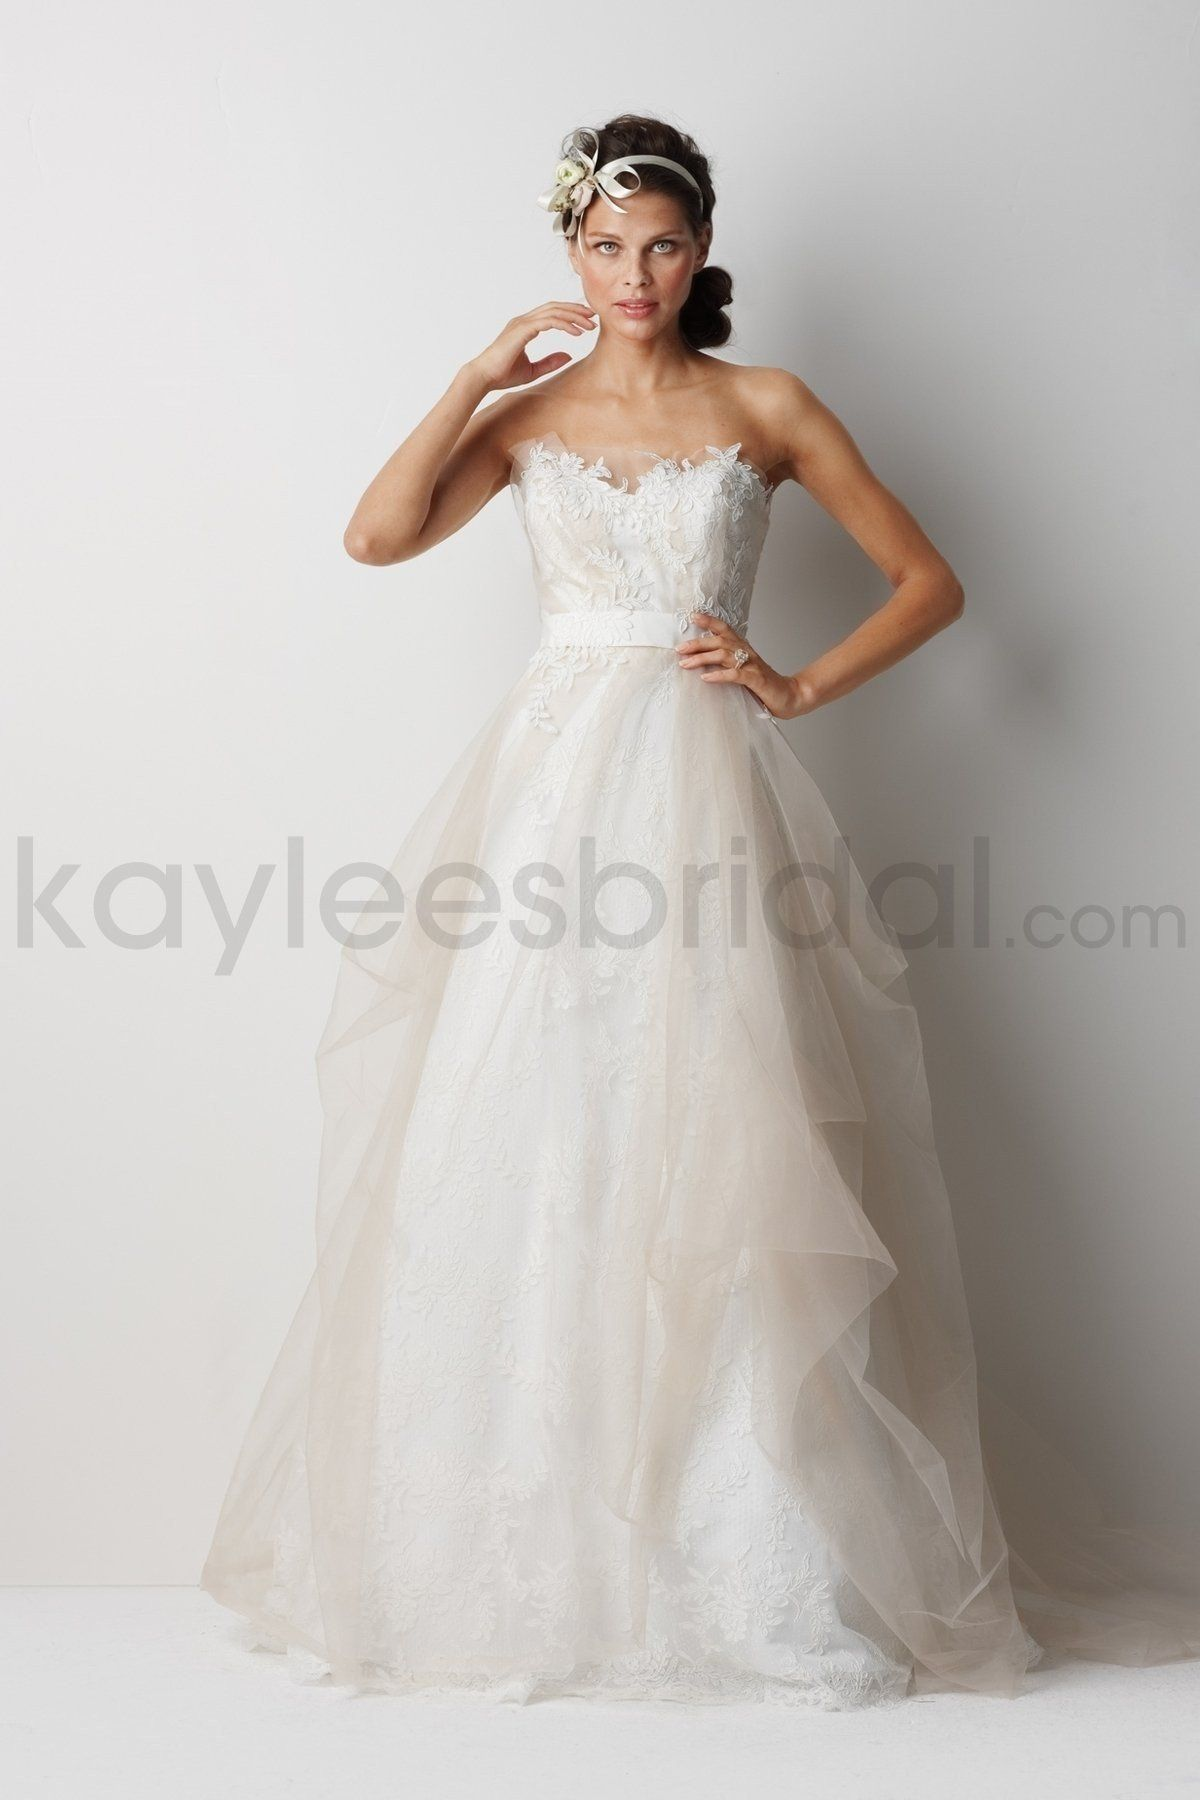 Tulle and Lace Strapless Sweetheart A-line Wedding Dress. $305 incl ...